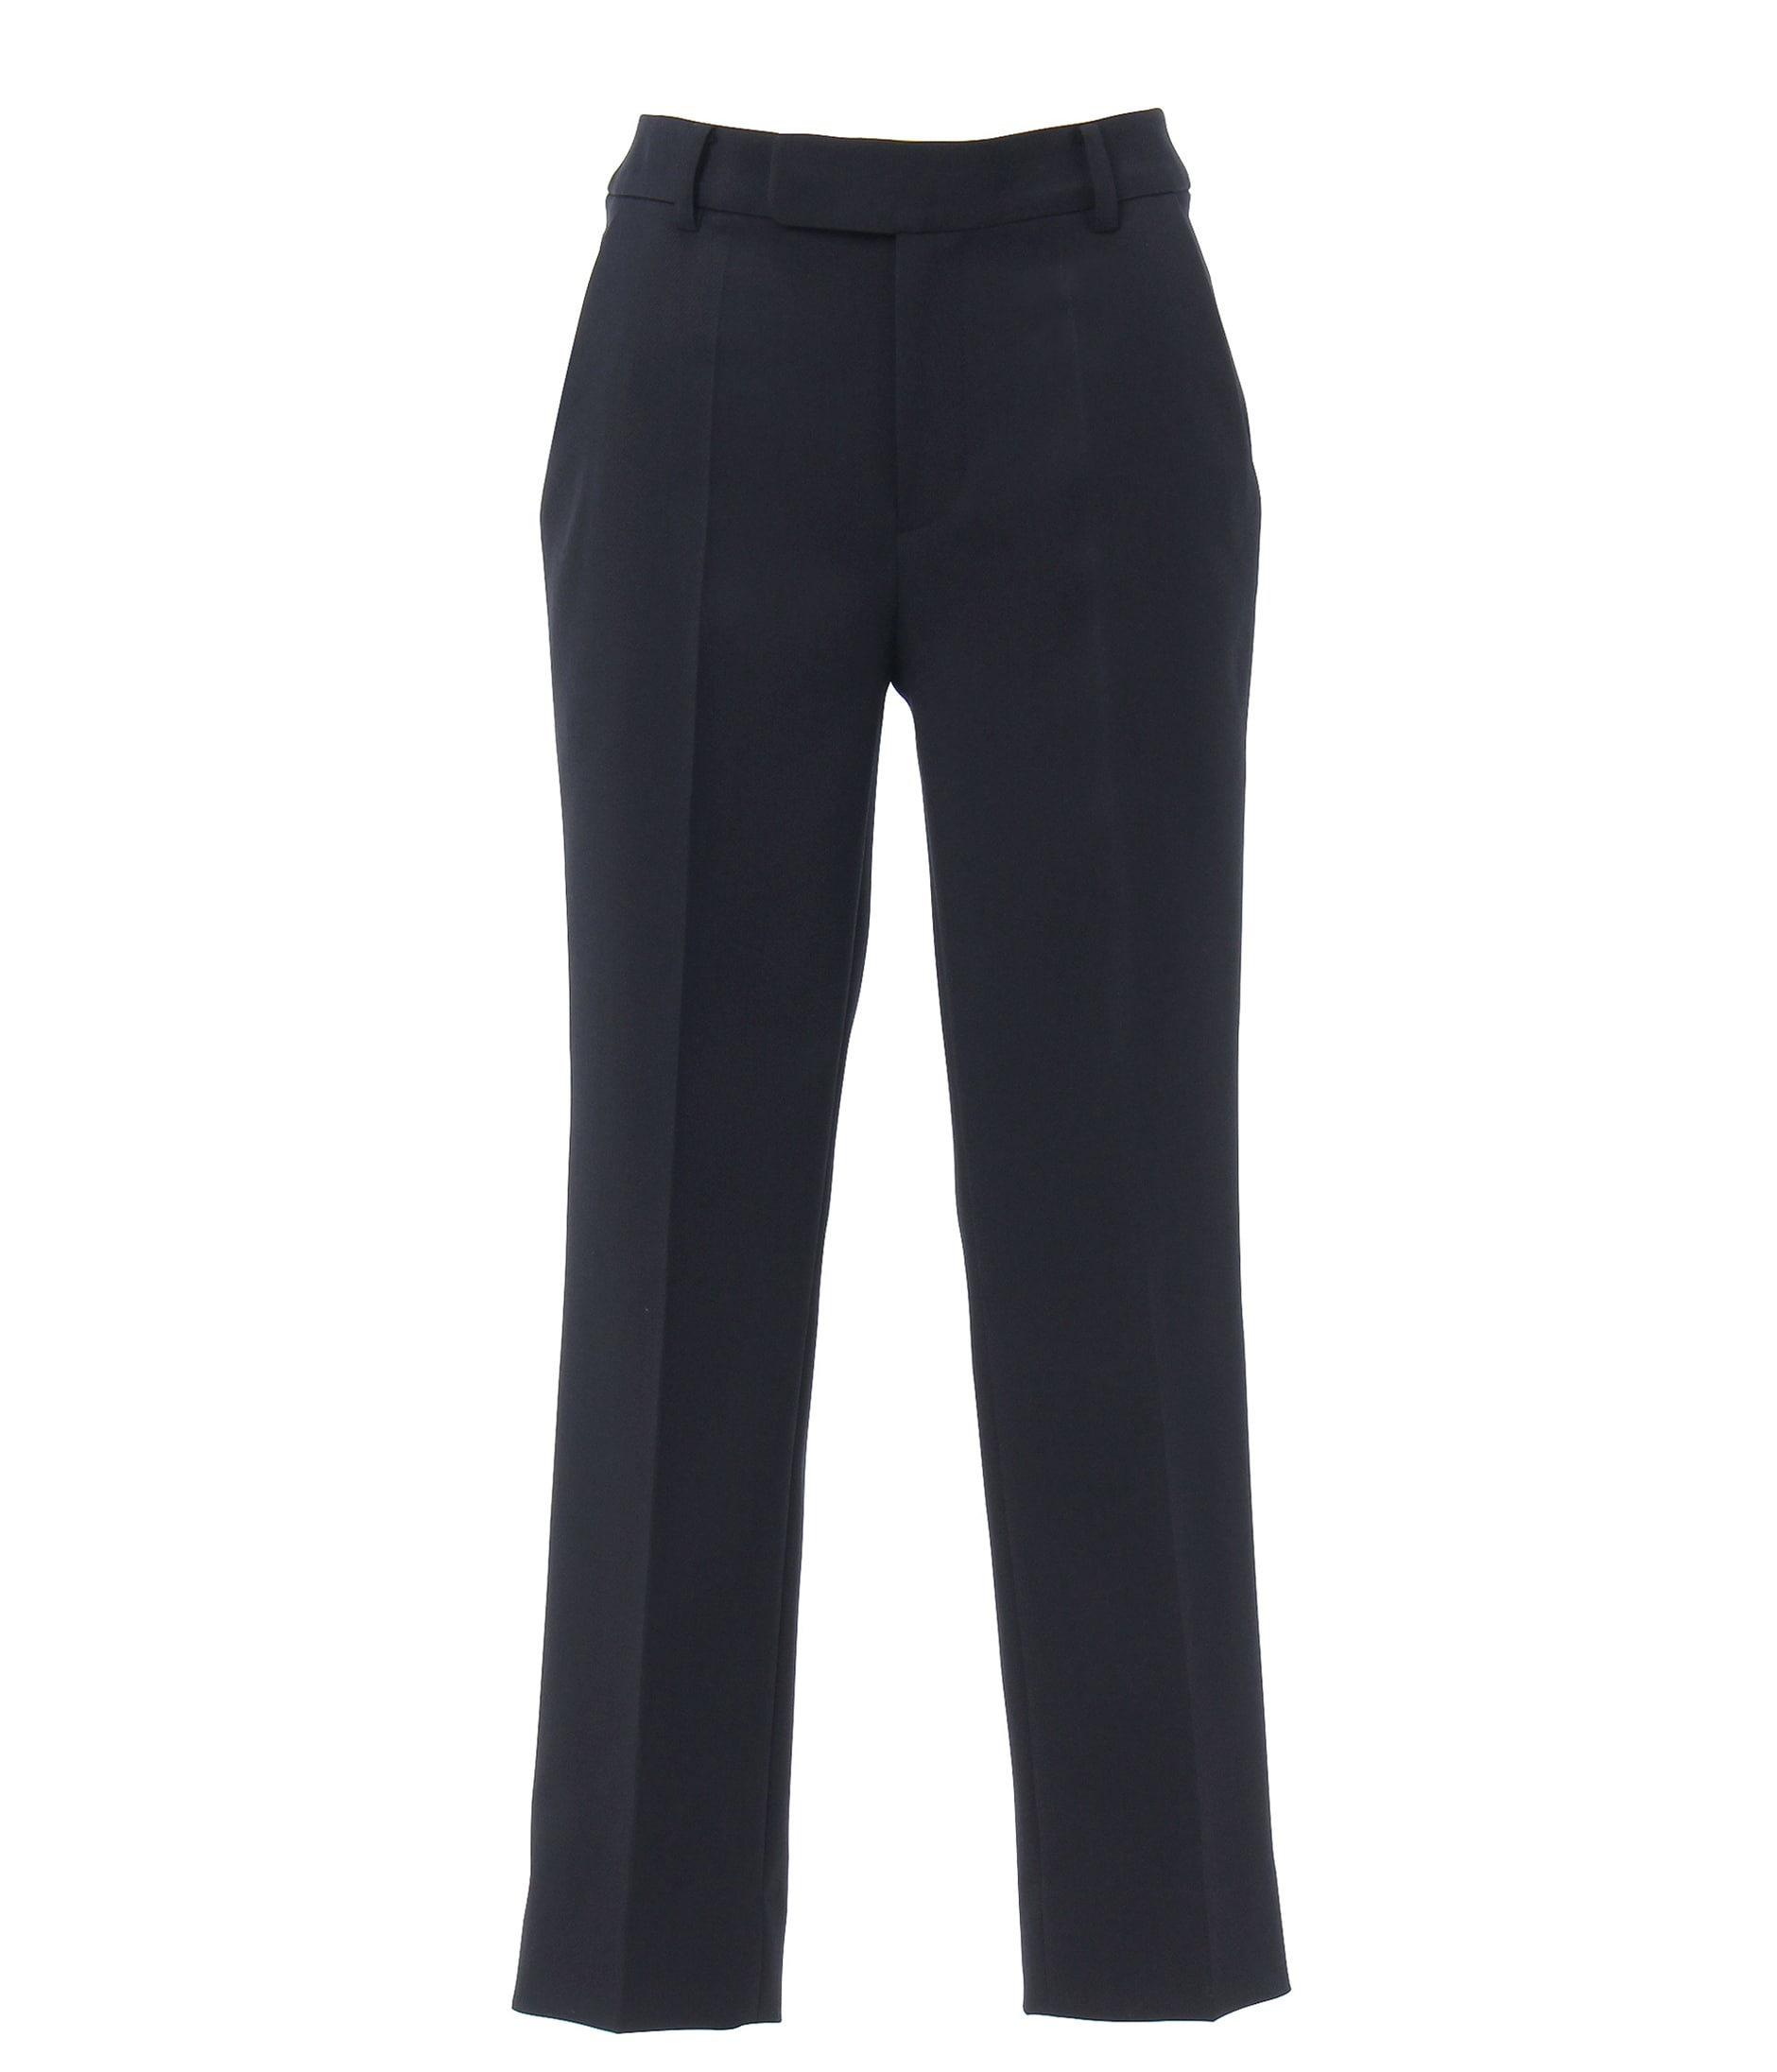 IONA TROUSERS 詳細画像 NAVY 1